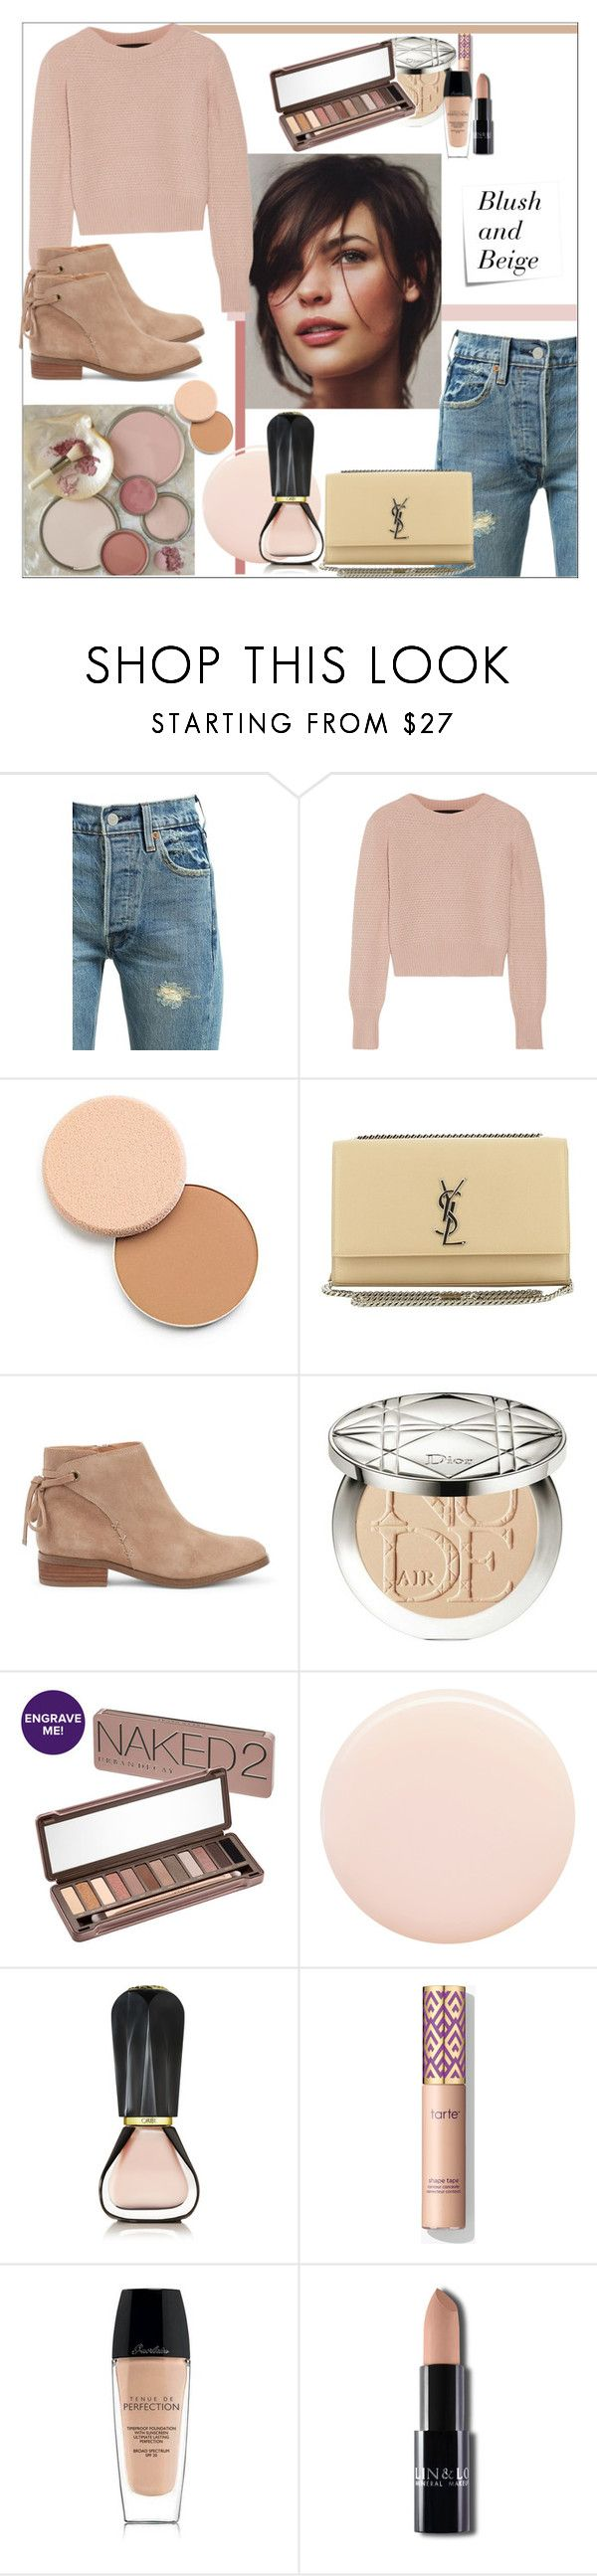 """""""Blush and Beige"""" by tattooedmum on Polyvore featuring Levi's, The Elder Statesman, Shiseido, Yves Saint Laurent, Sole Society, Christian Dior, Urban Decay, Oribe, Guerlain and Post-It"""